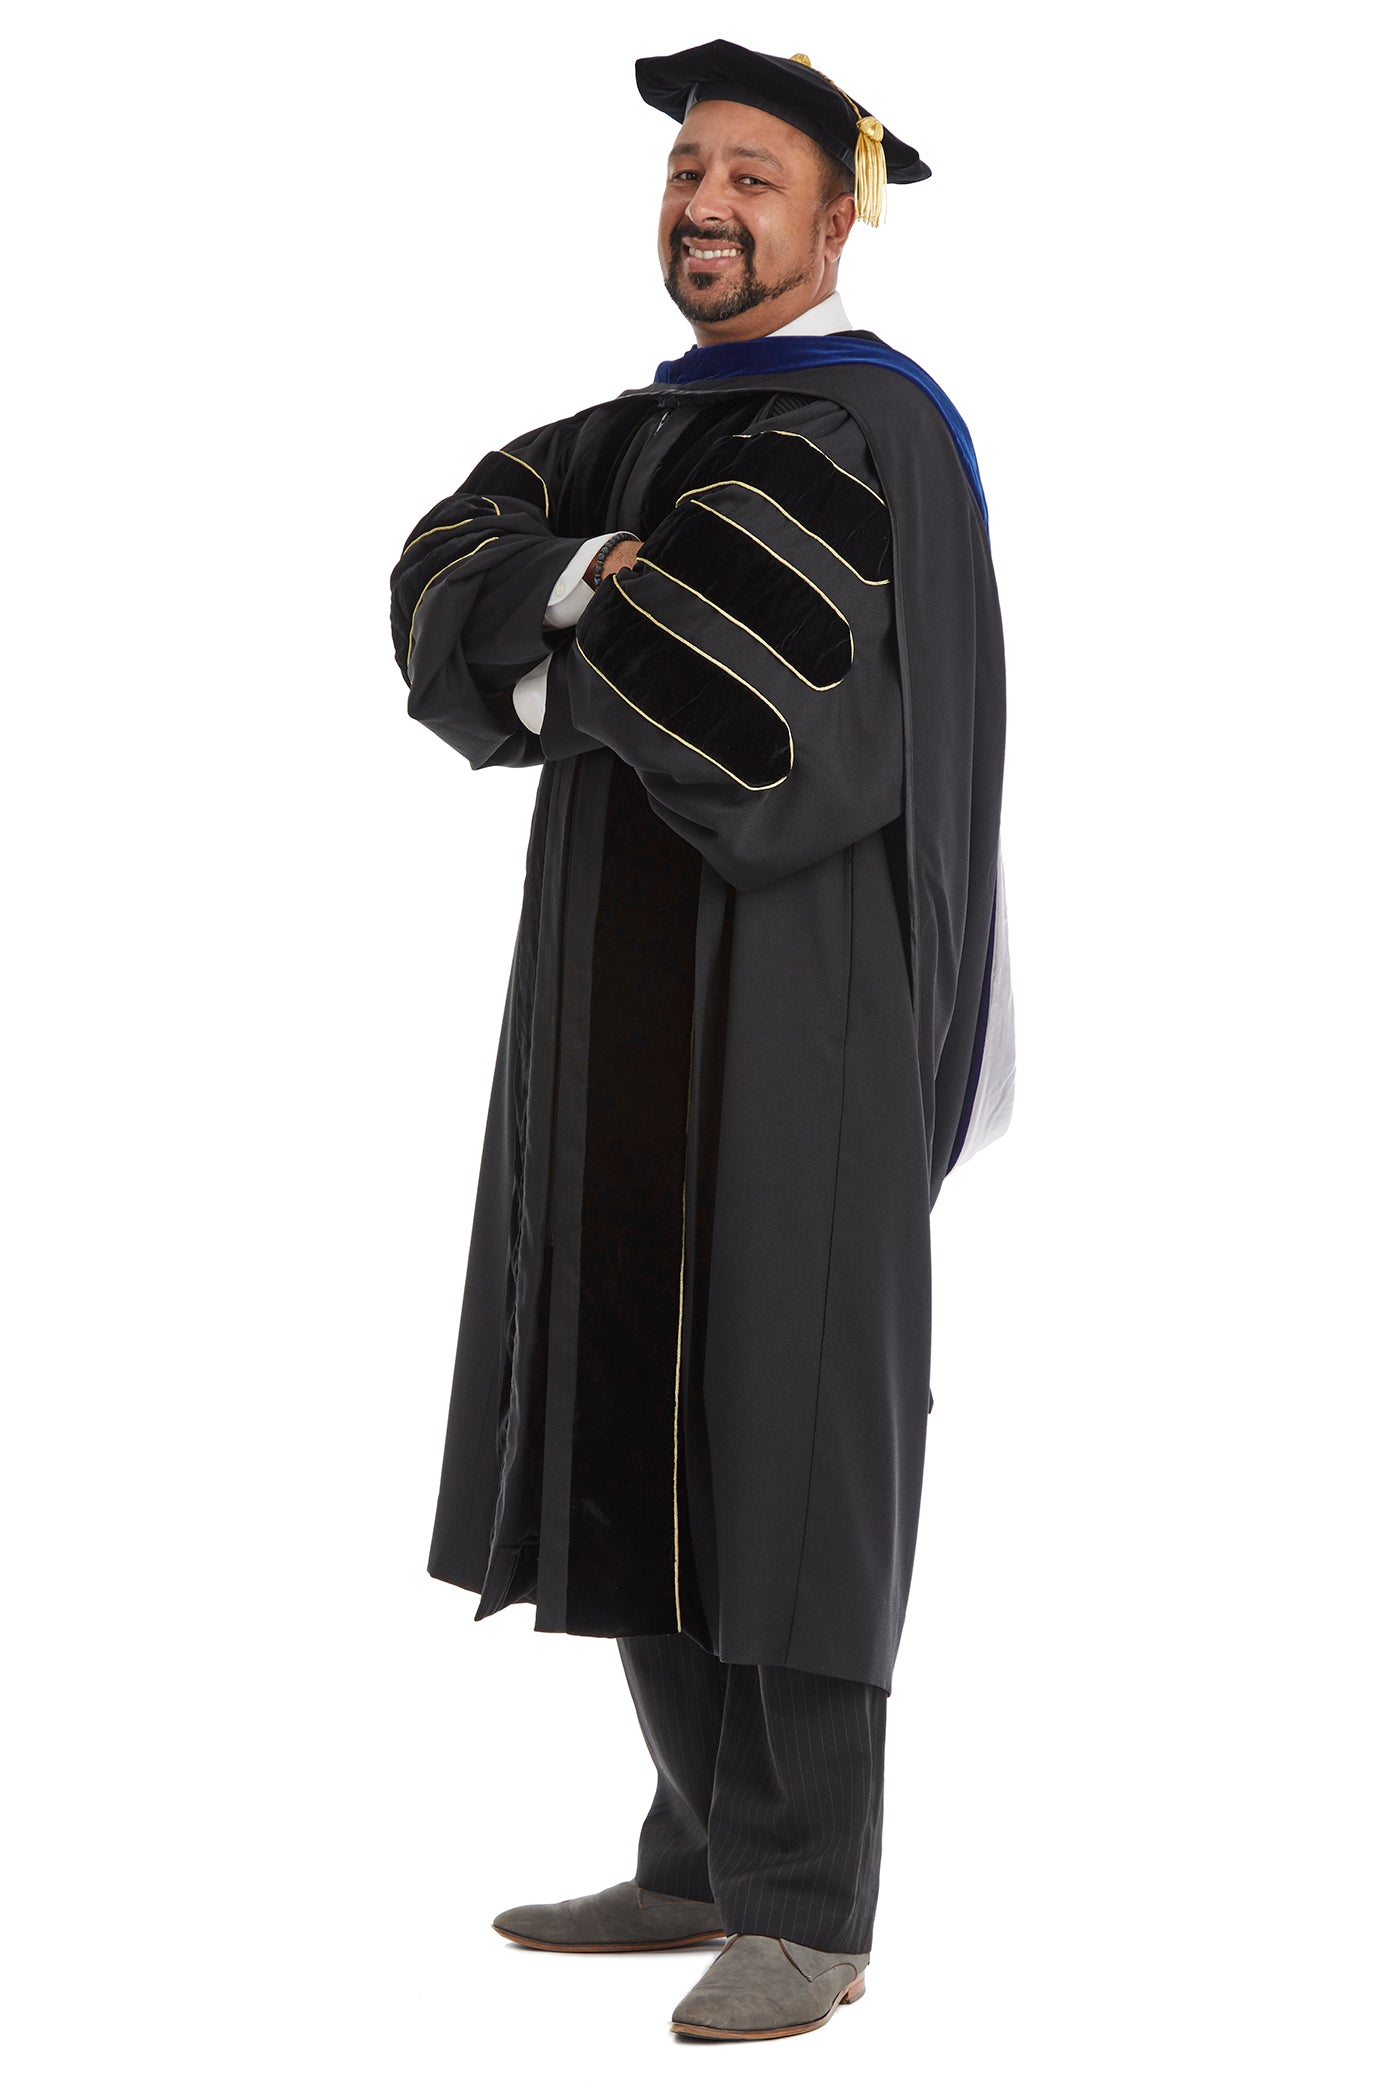 Complete Doctoral Regalia for US Military Academy at West Point